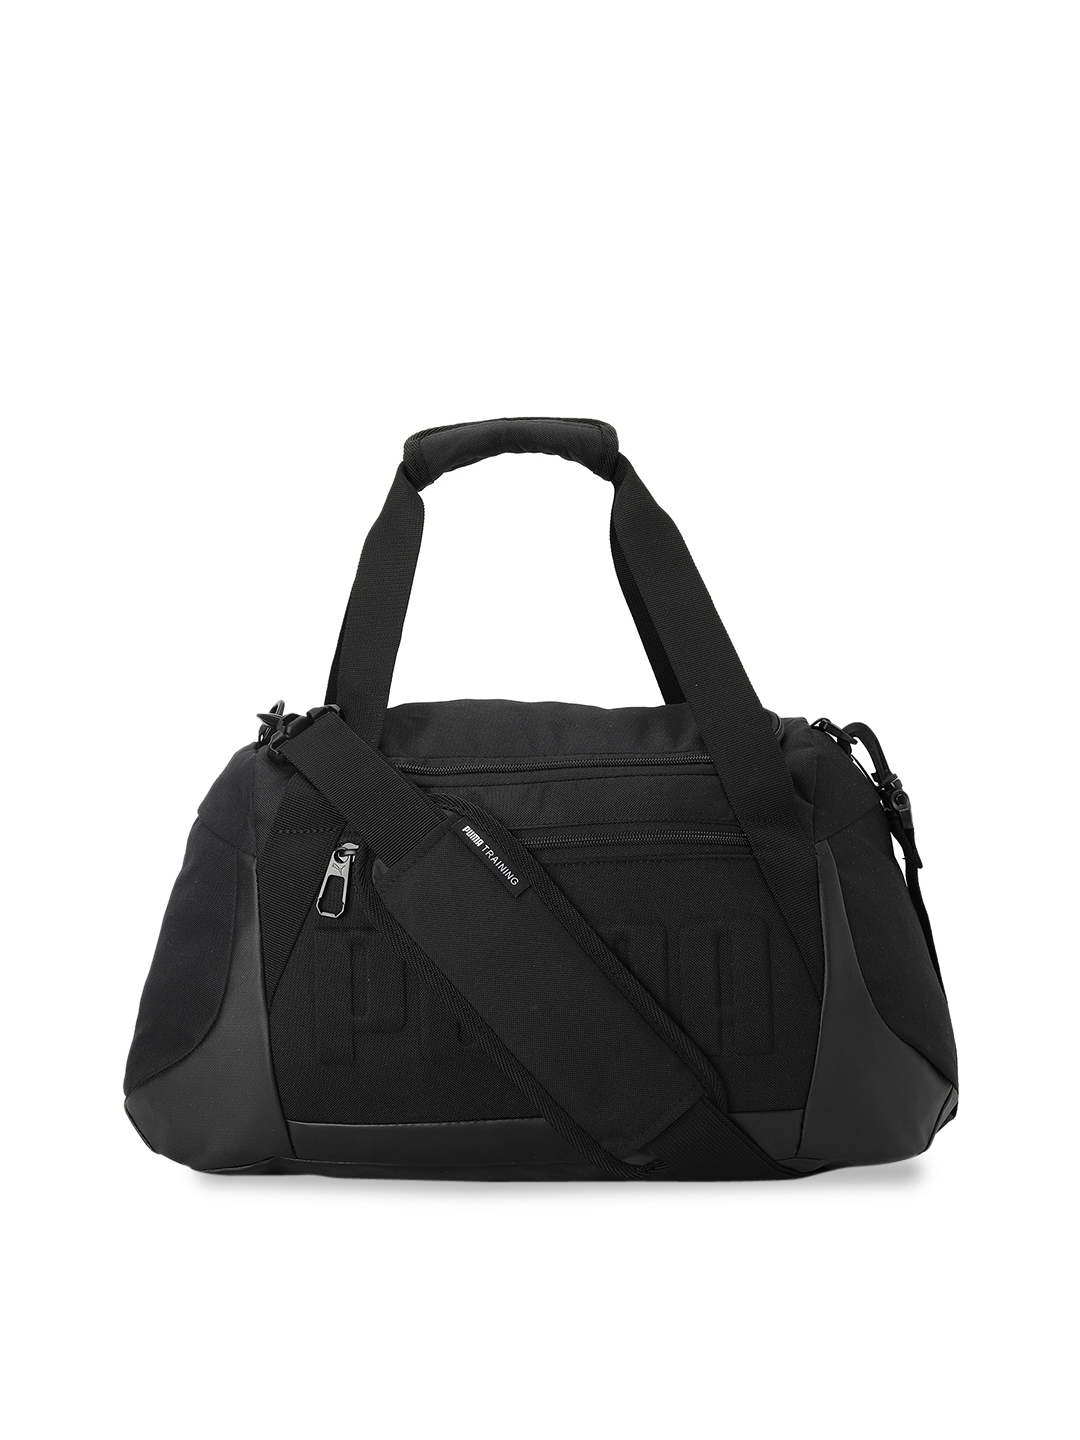 Puma Unisex Black Solid Gym Duffel Bag